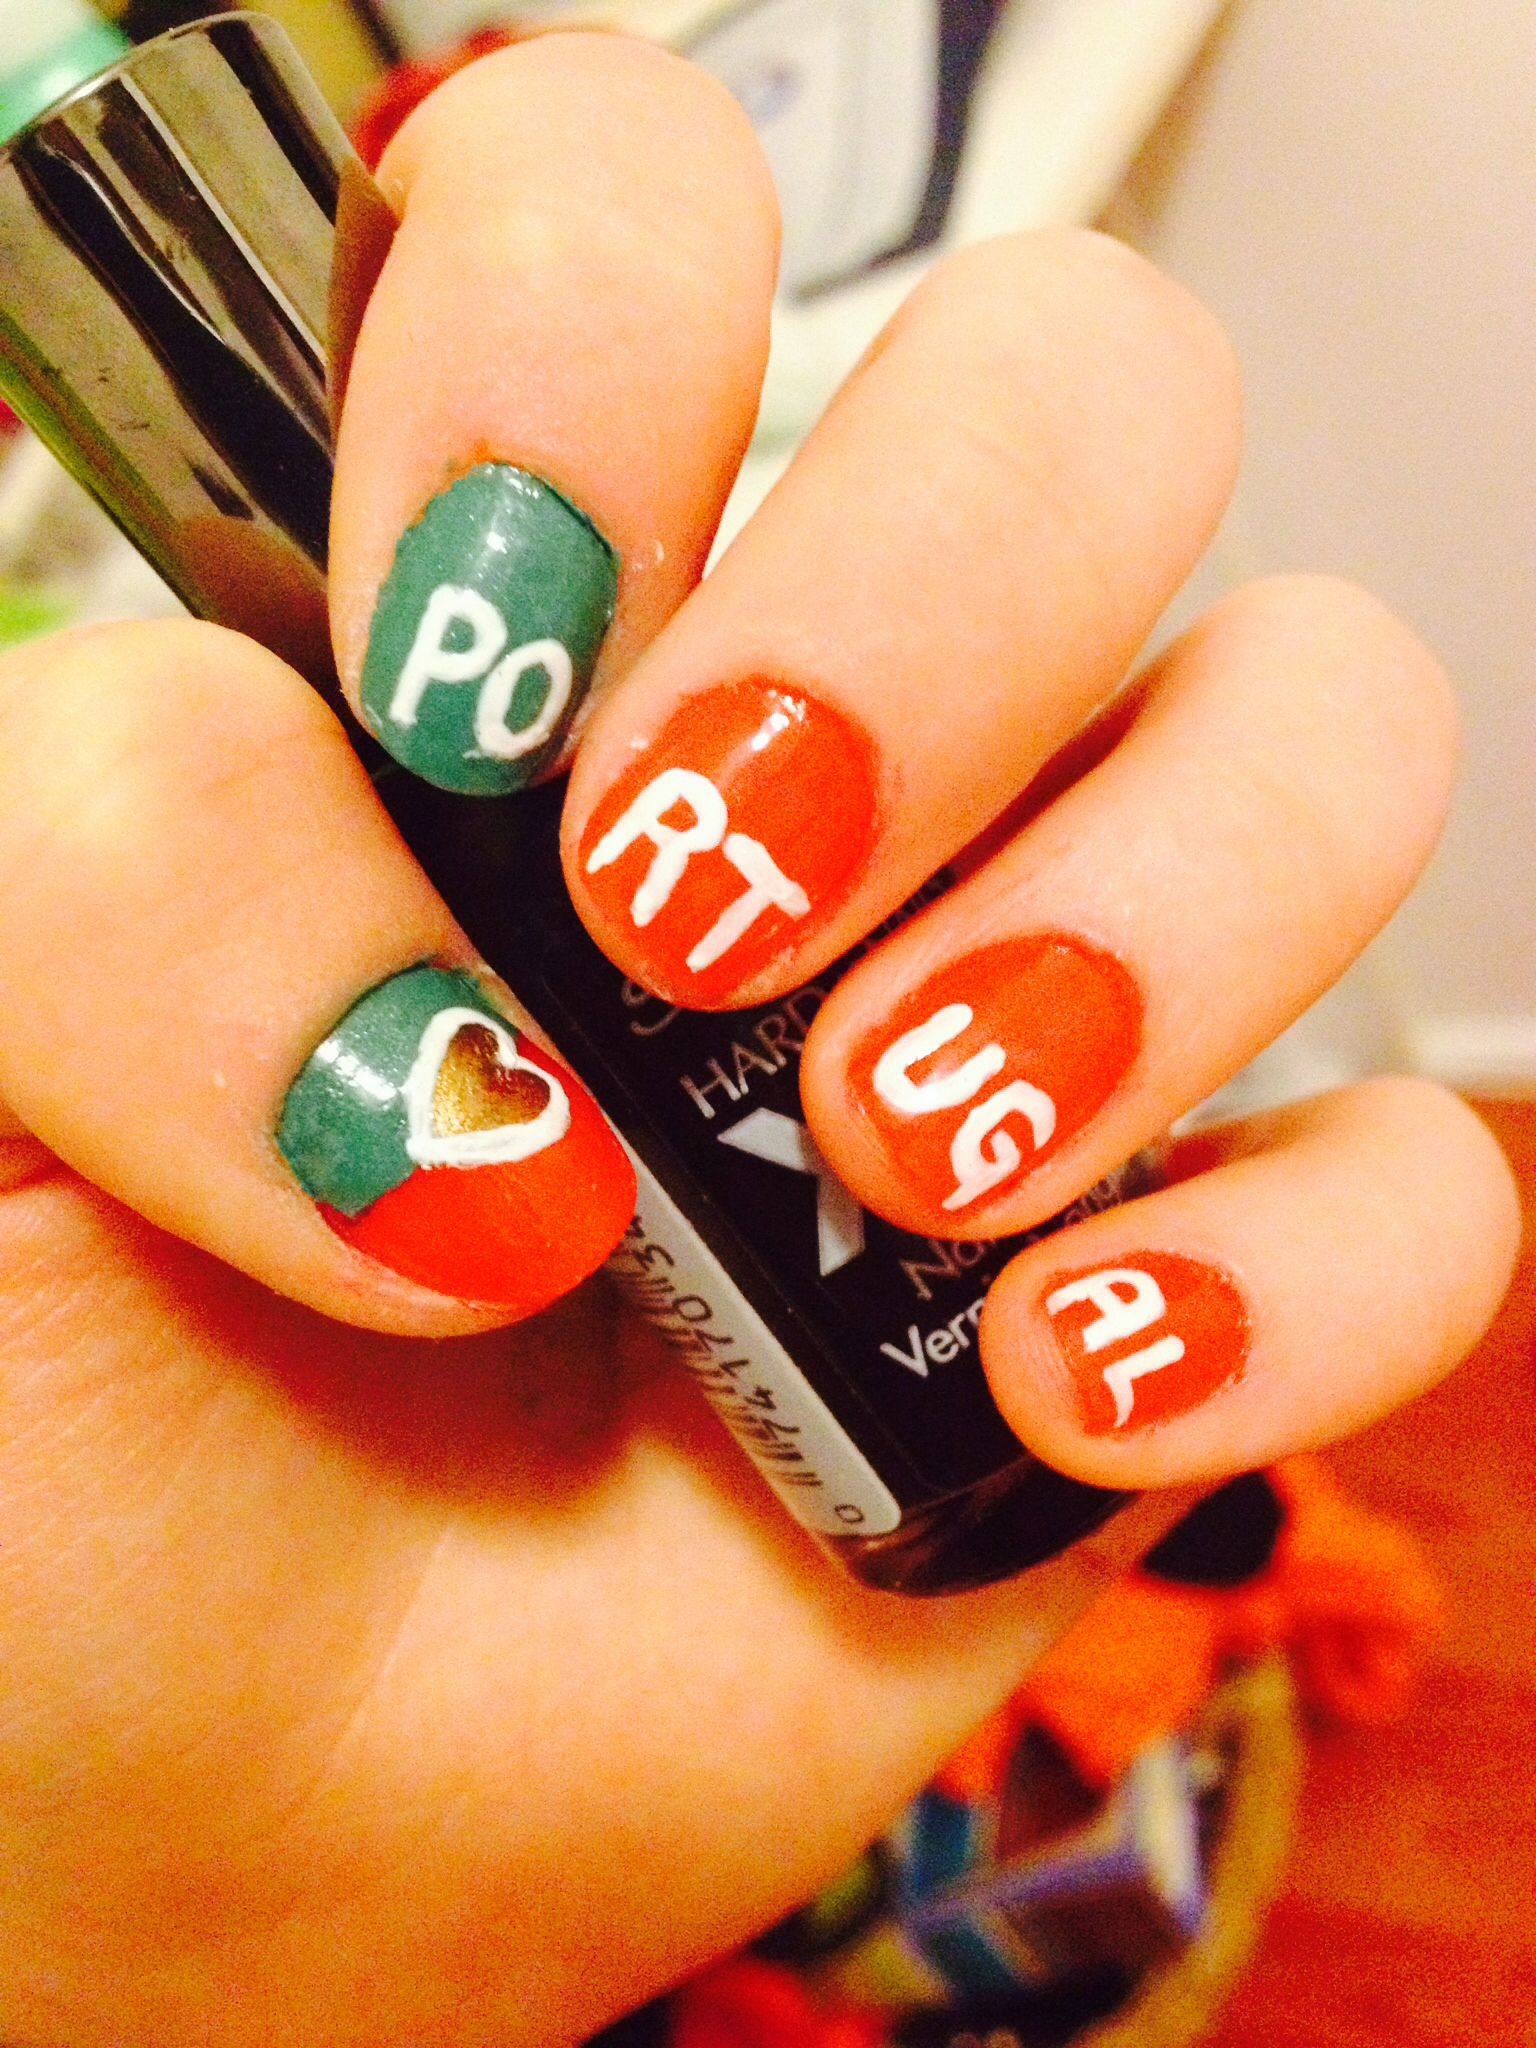 My Version Of The Soccer Themed Portugal Nails Nails How To Do Nails Nail Polish